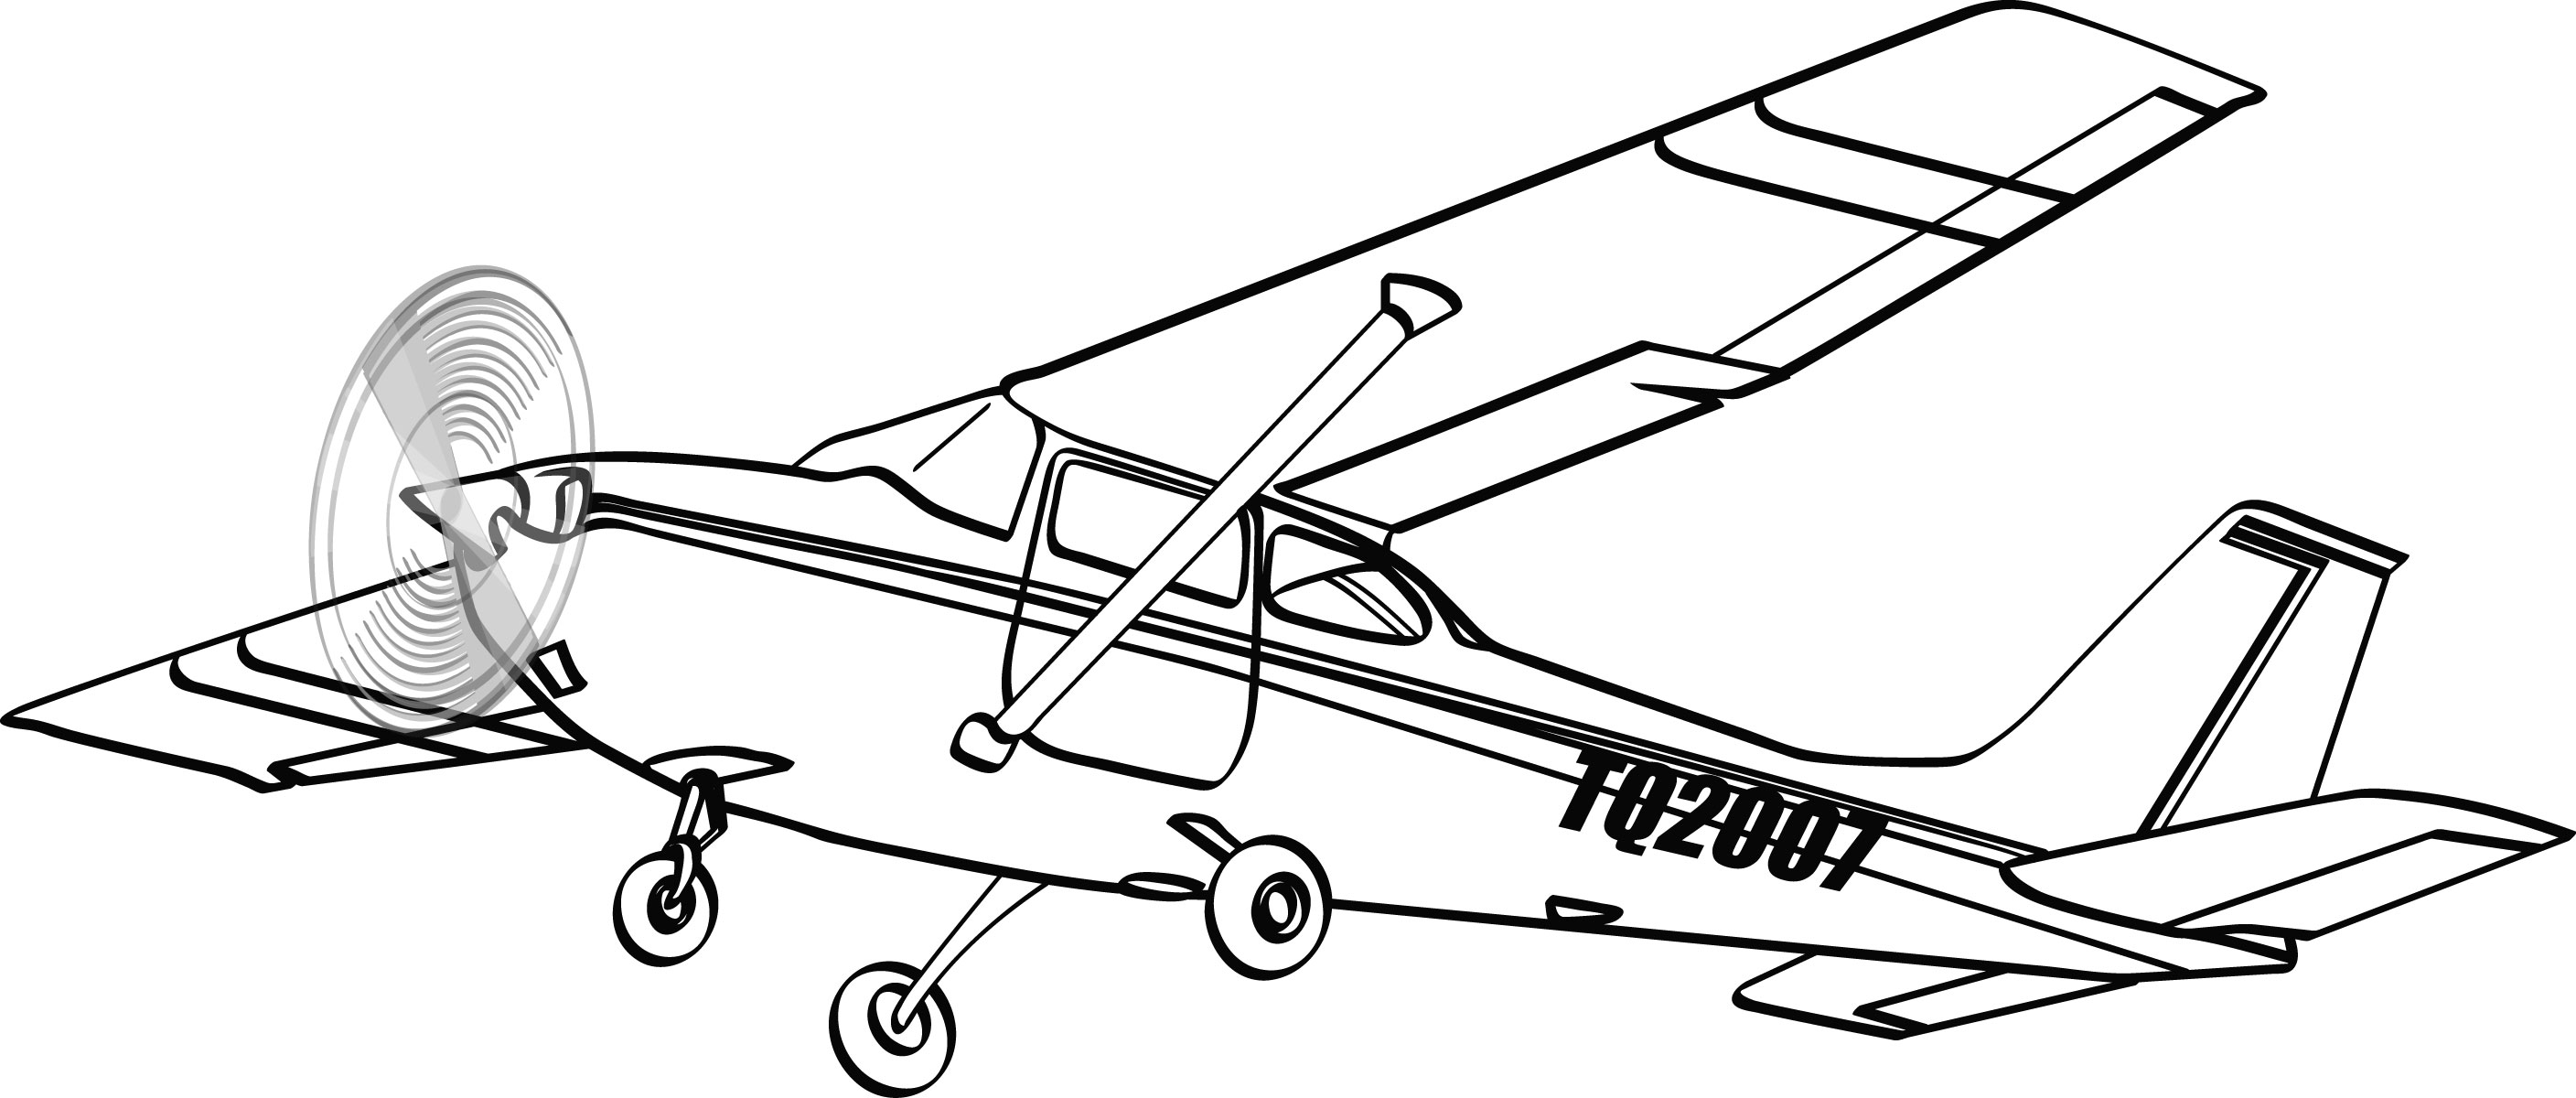 Cessna 172 Drawing at GetDrawings com | Free for personal